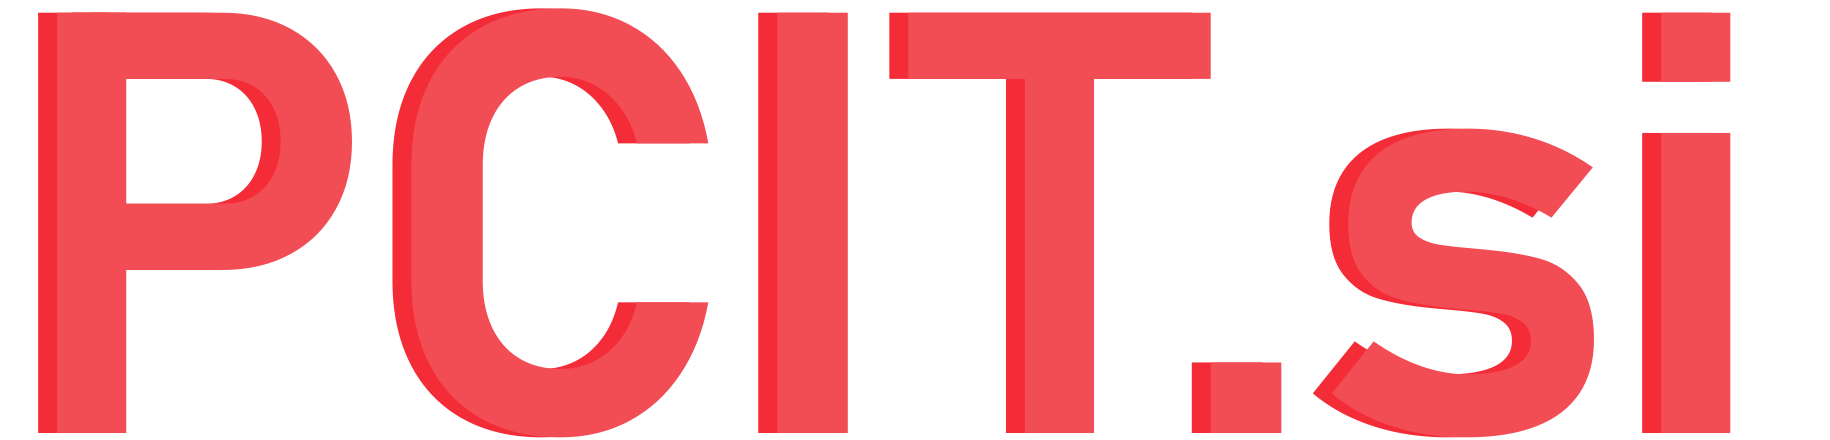 cropped-logopcit.png